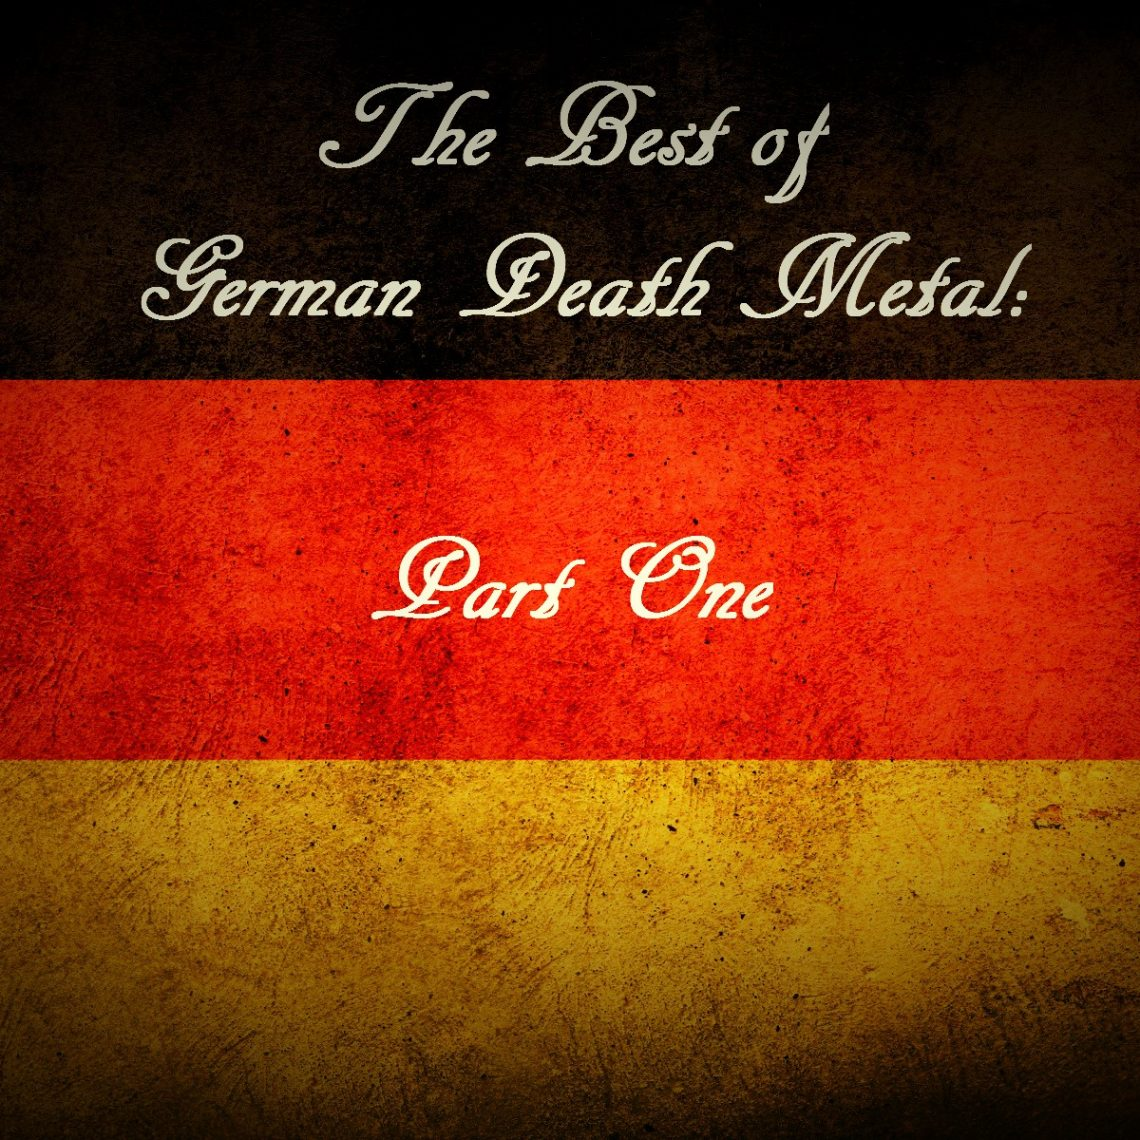 The Best of German Death Metal – Part One